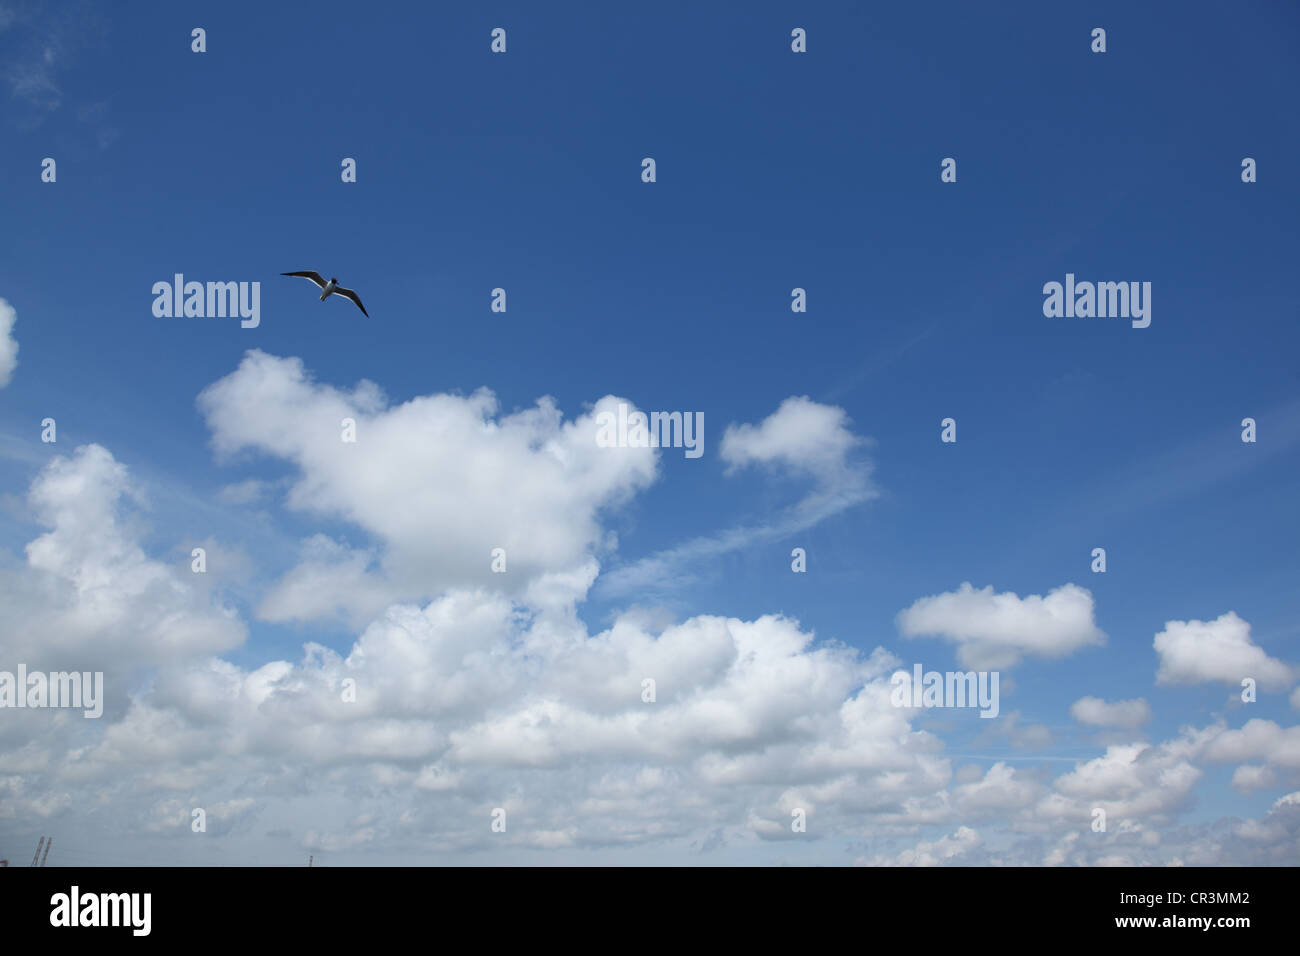 Seagull flying in sky with clouds Photo Stock